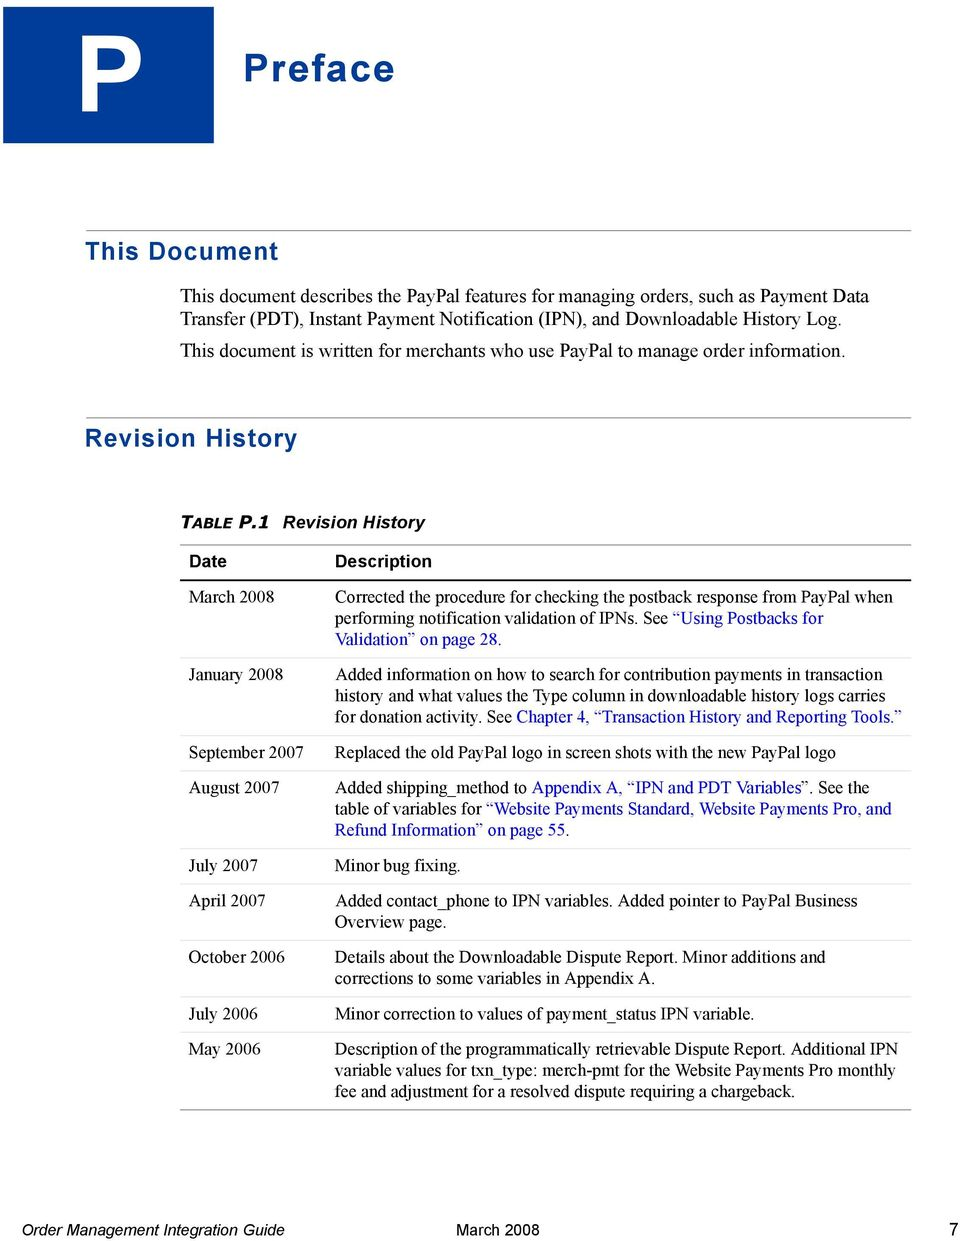 1 Revision History Date March 2008 January 2008 September 2007 August 2007 July 2007 April 2007 October 2006 July 2006 May 2006 Description Corrected the procedure for checking the postback response